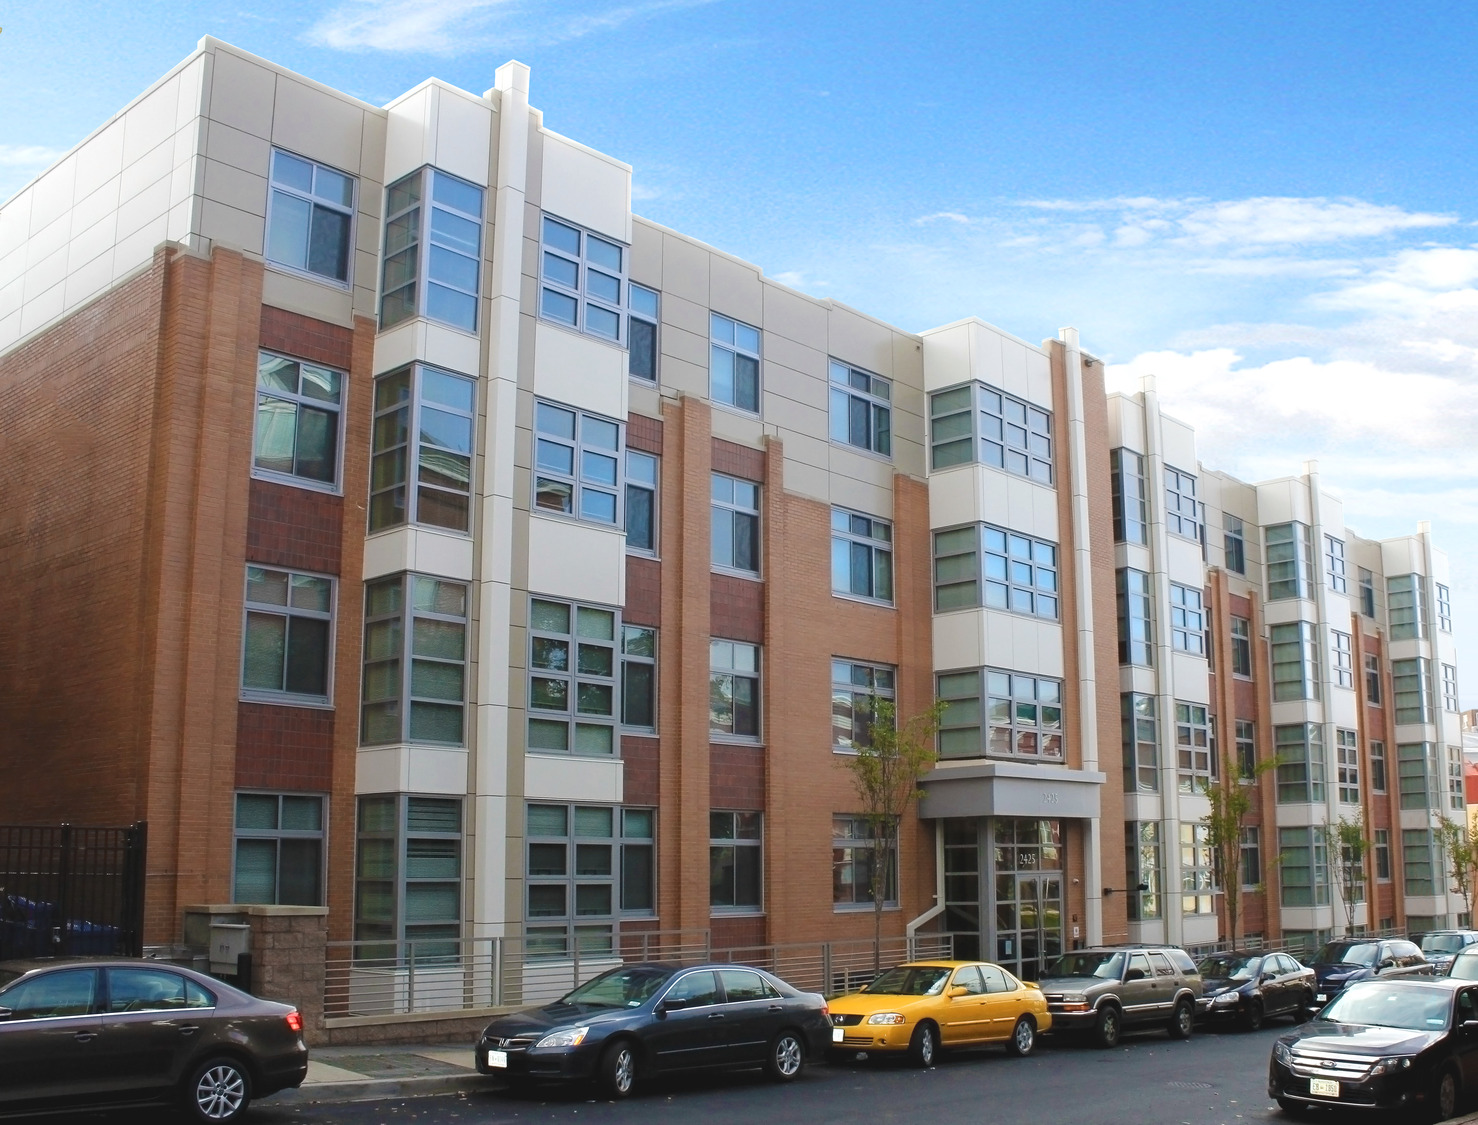 CBG builds Dorchester House Addition, a 117 Wood-Framed Apartments with Below-Grade Parking Garage in Washington, DC - Image #1